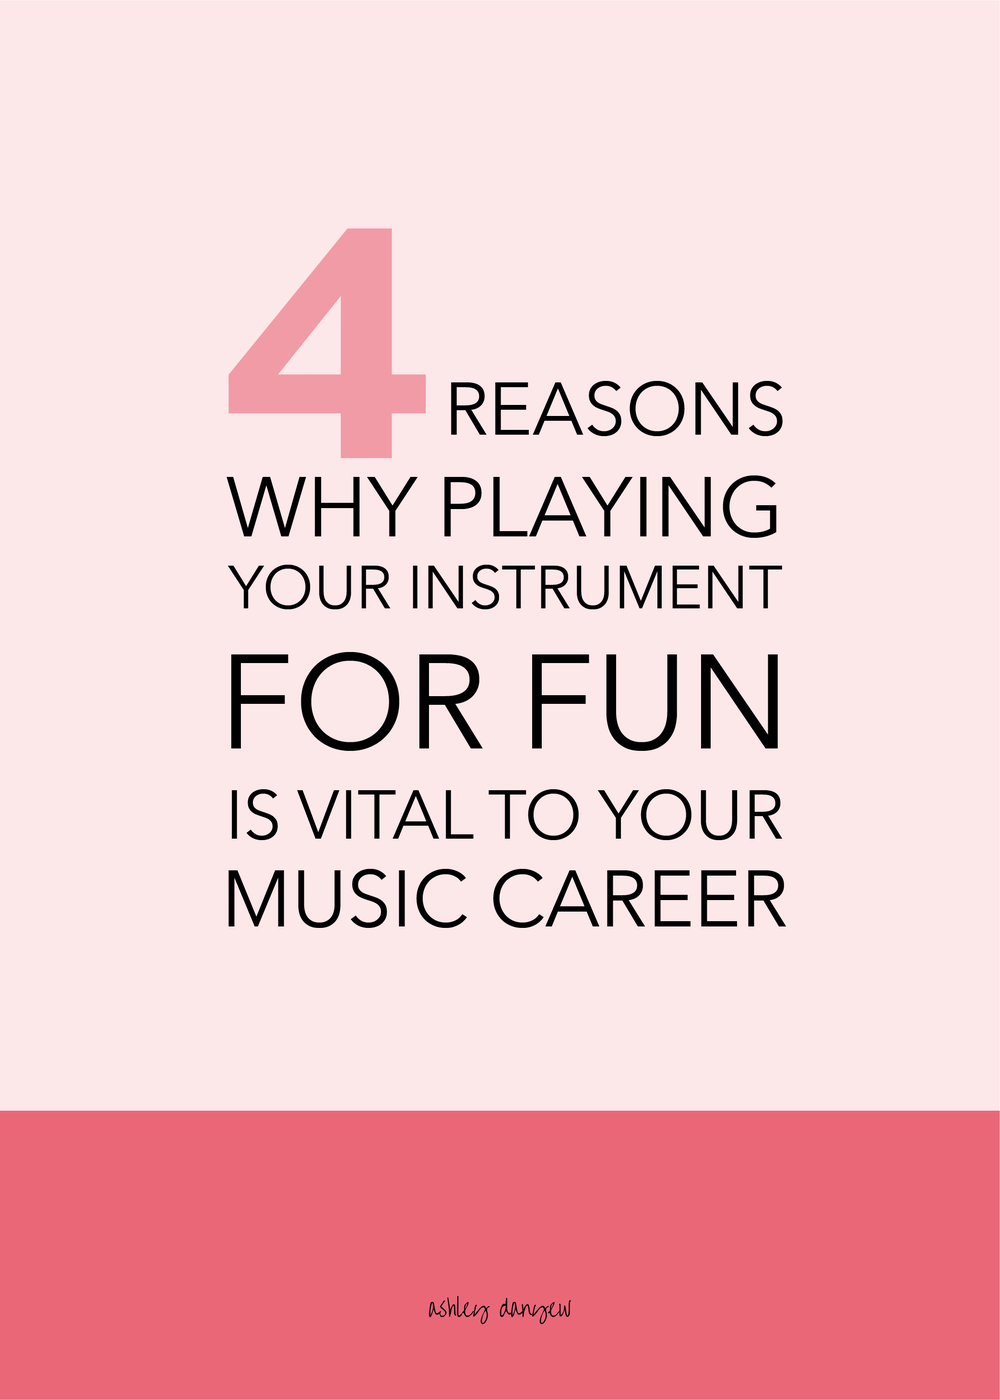 Copy of Four Reasons Why Playing Your Instrument for Fun is Vital to Your Music Career